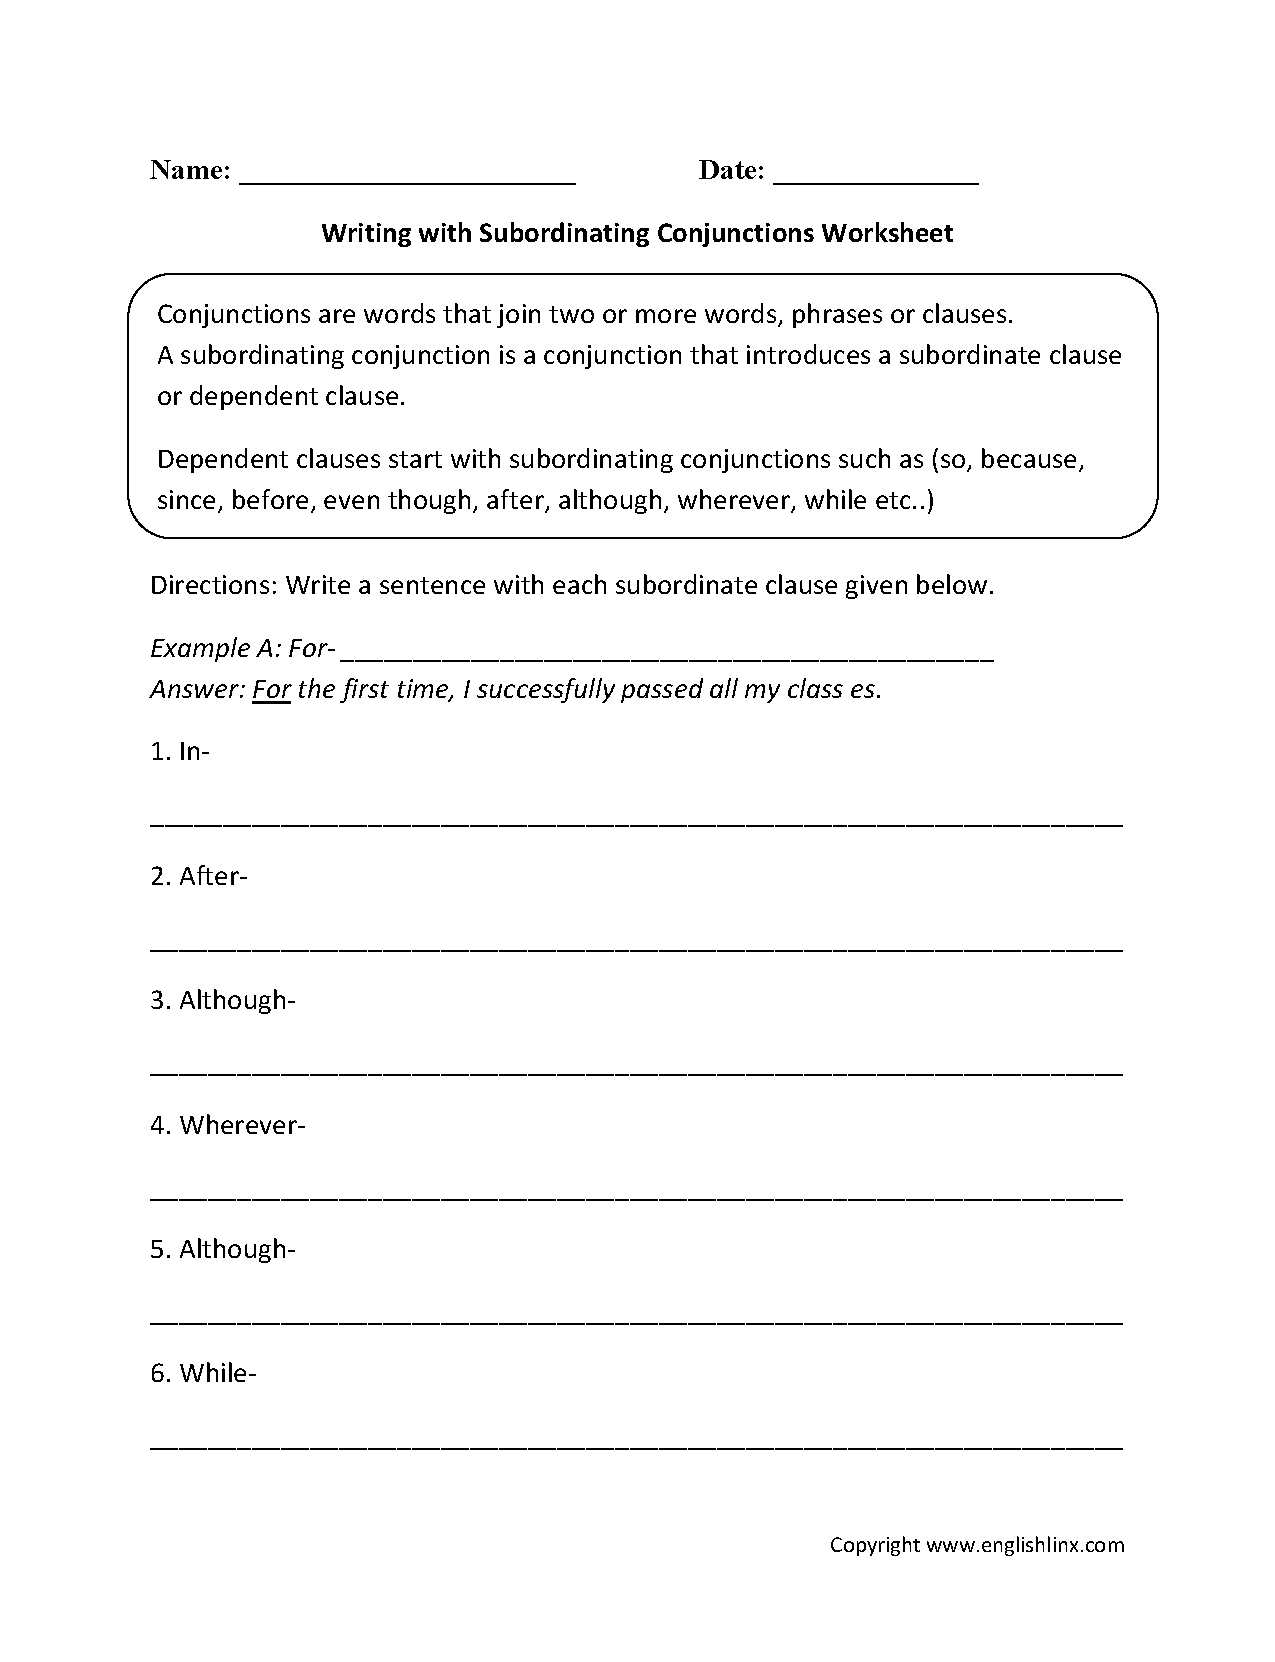 hight resolution of Conjunctions Worksheets   Writing with Subordinating Conjunctions Worksheets